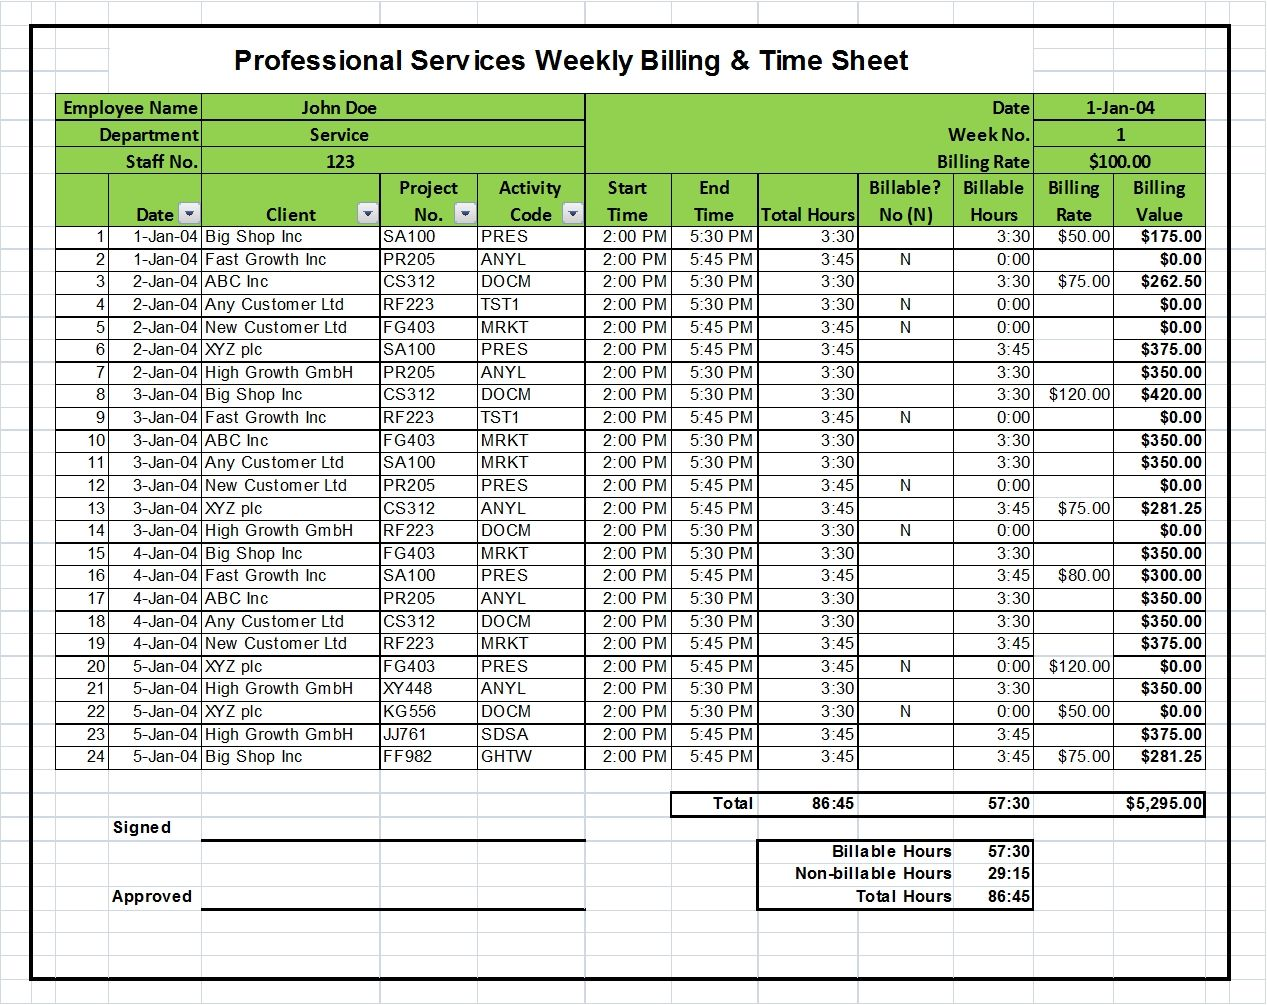 Excel Billing Timesheet Templates For Professional Services Projects  Billing Spreadsheet Template